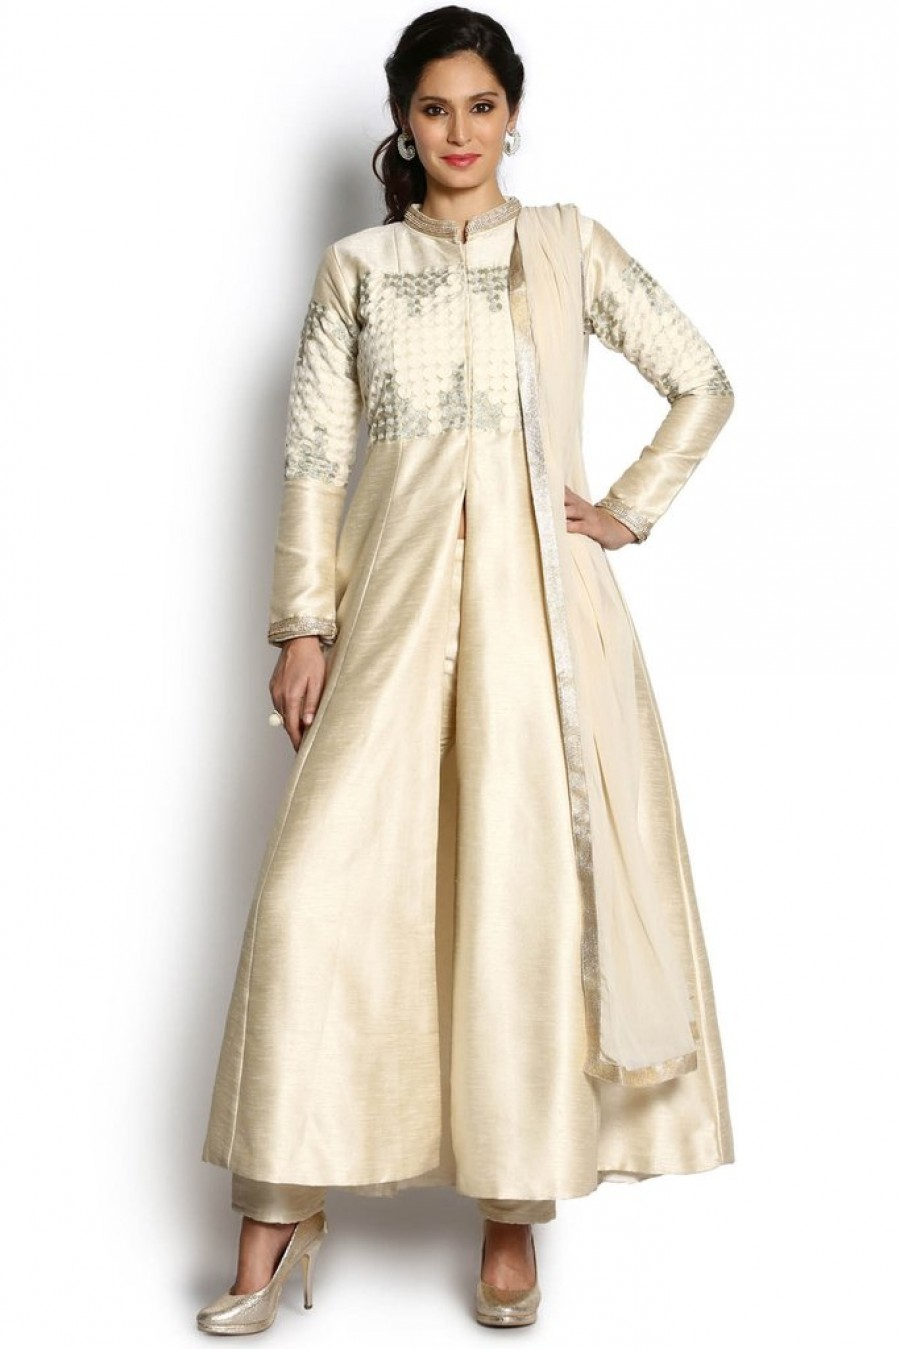 073205a77b Soch Off White And Silver Chanderi Anarkali Suit|Online Shopping ...